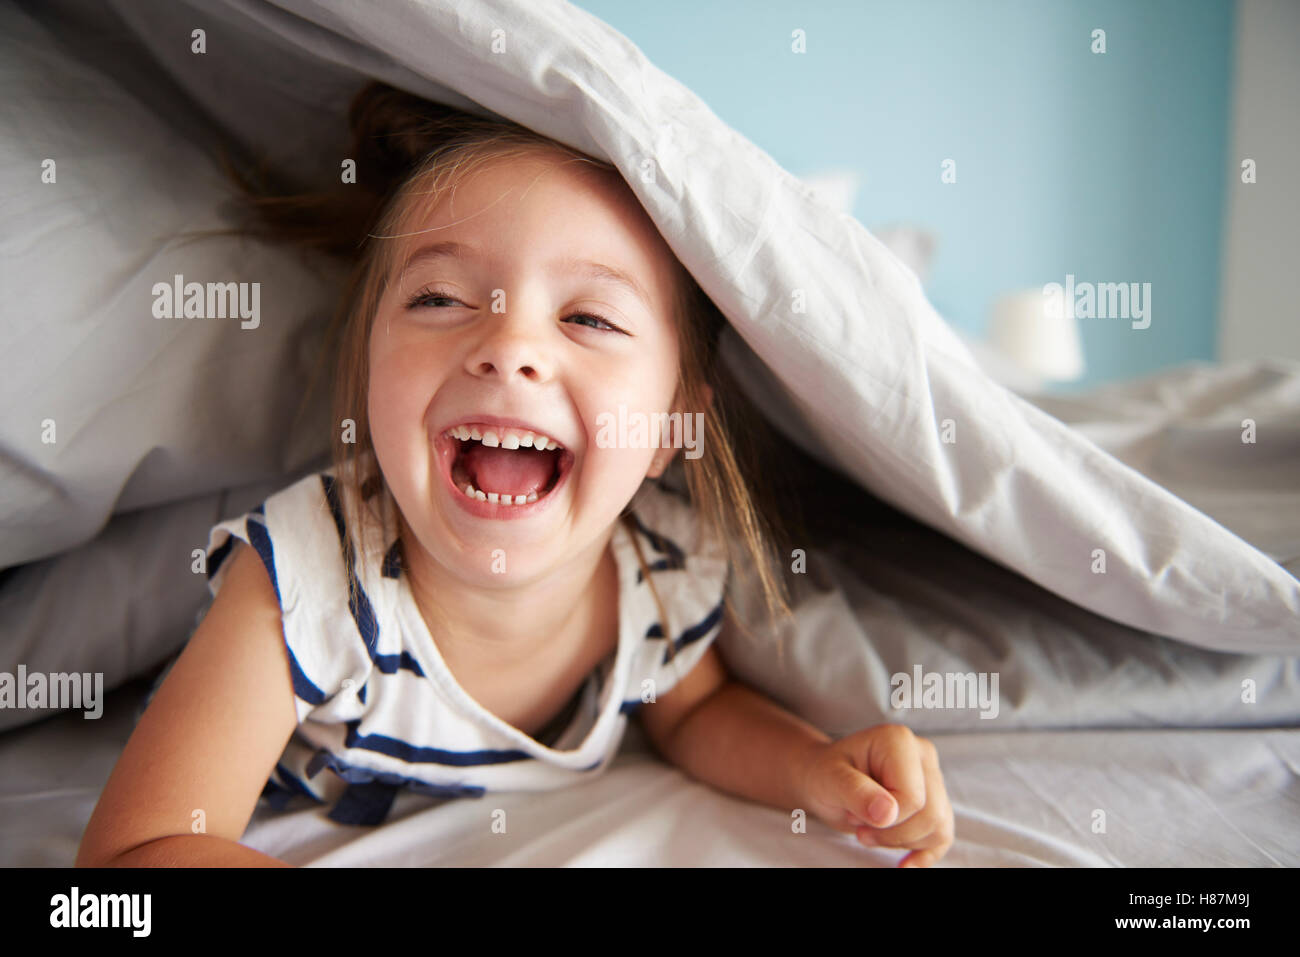 laugh out loud small baby girl stock photo: 125559438 - alamy